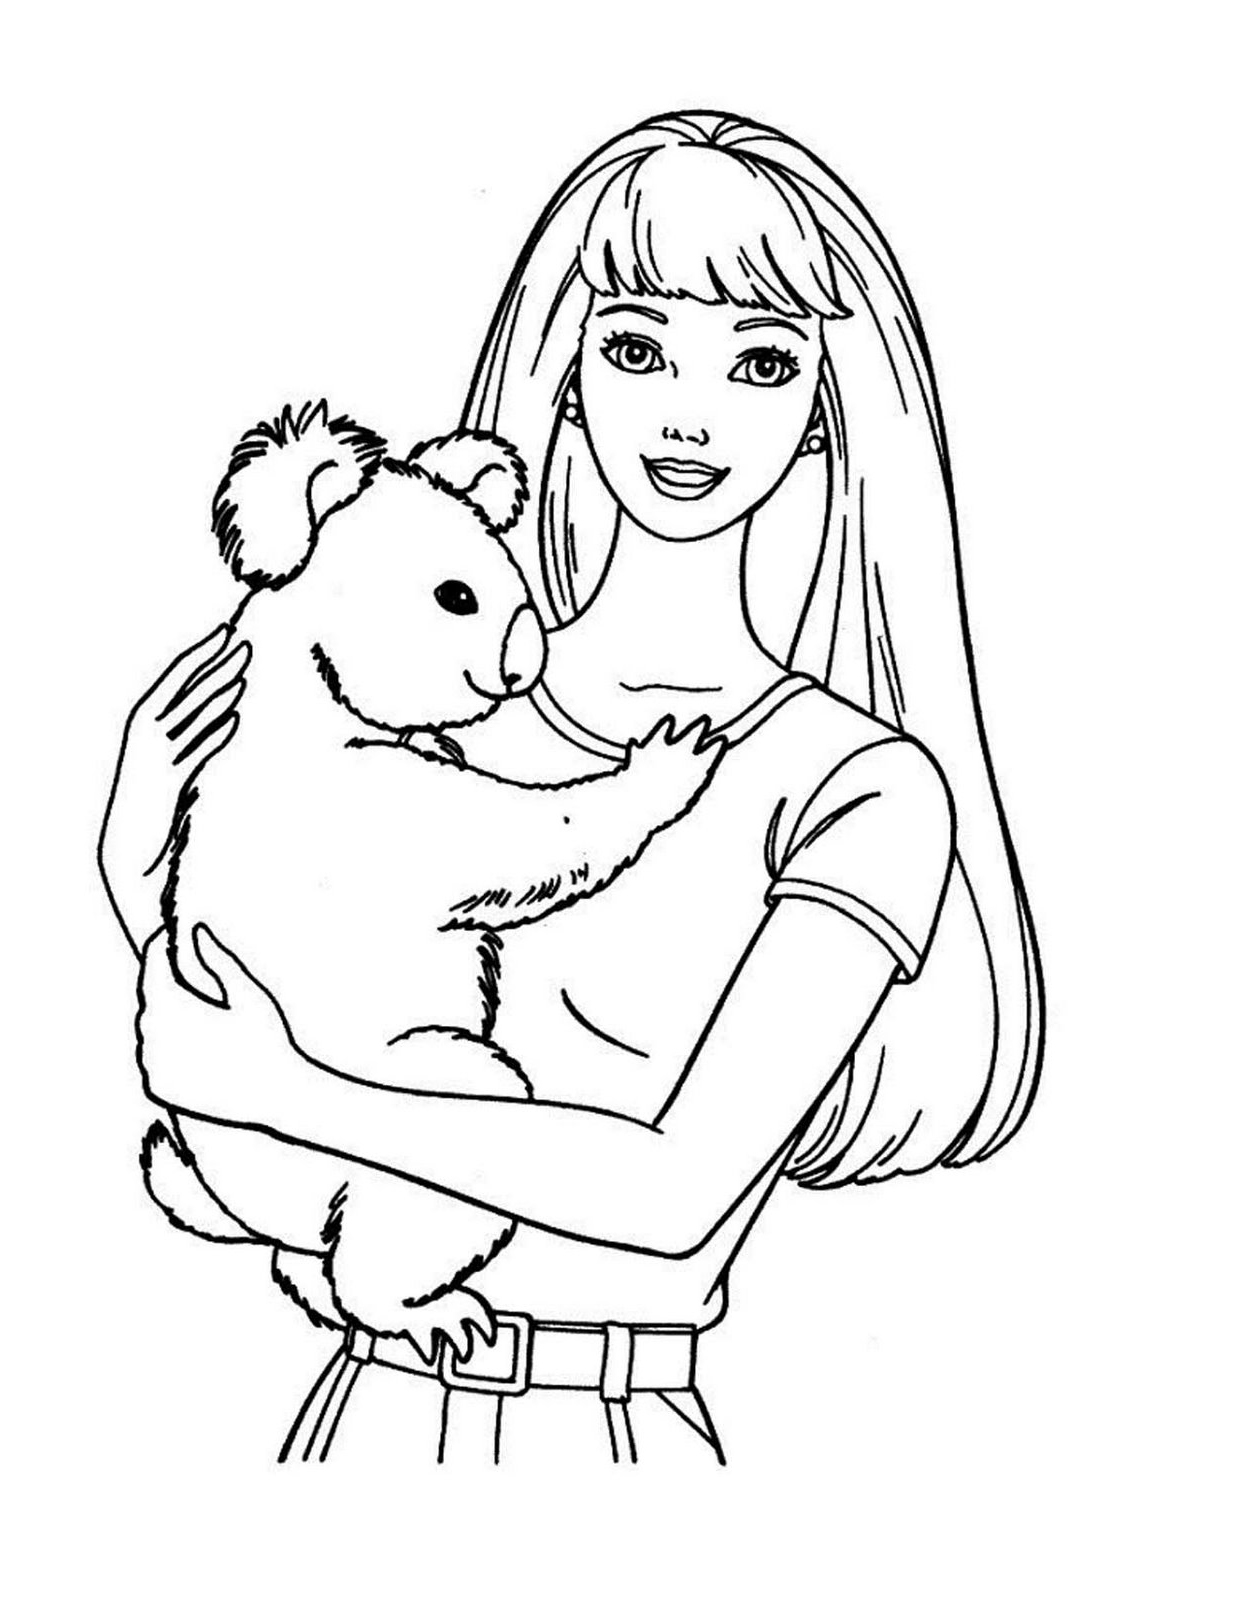 barbie-coloring-pages-tagged-with-printable-disney-colouring-pages